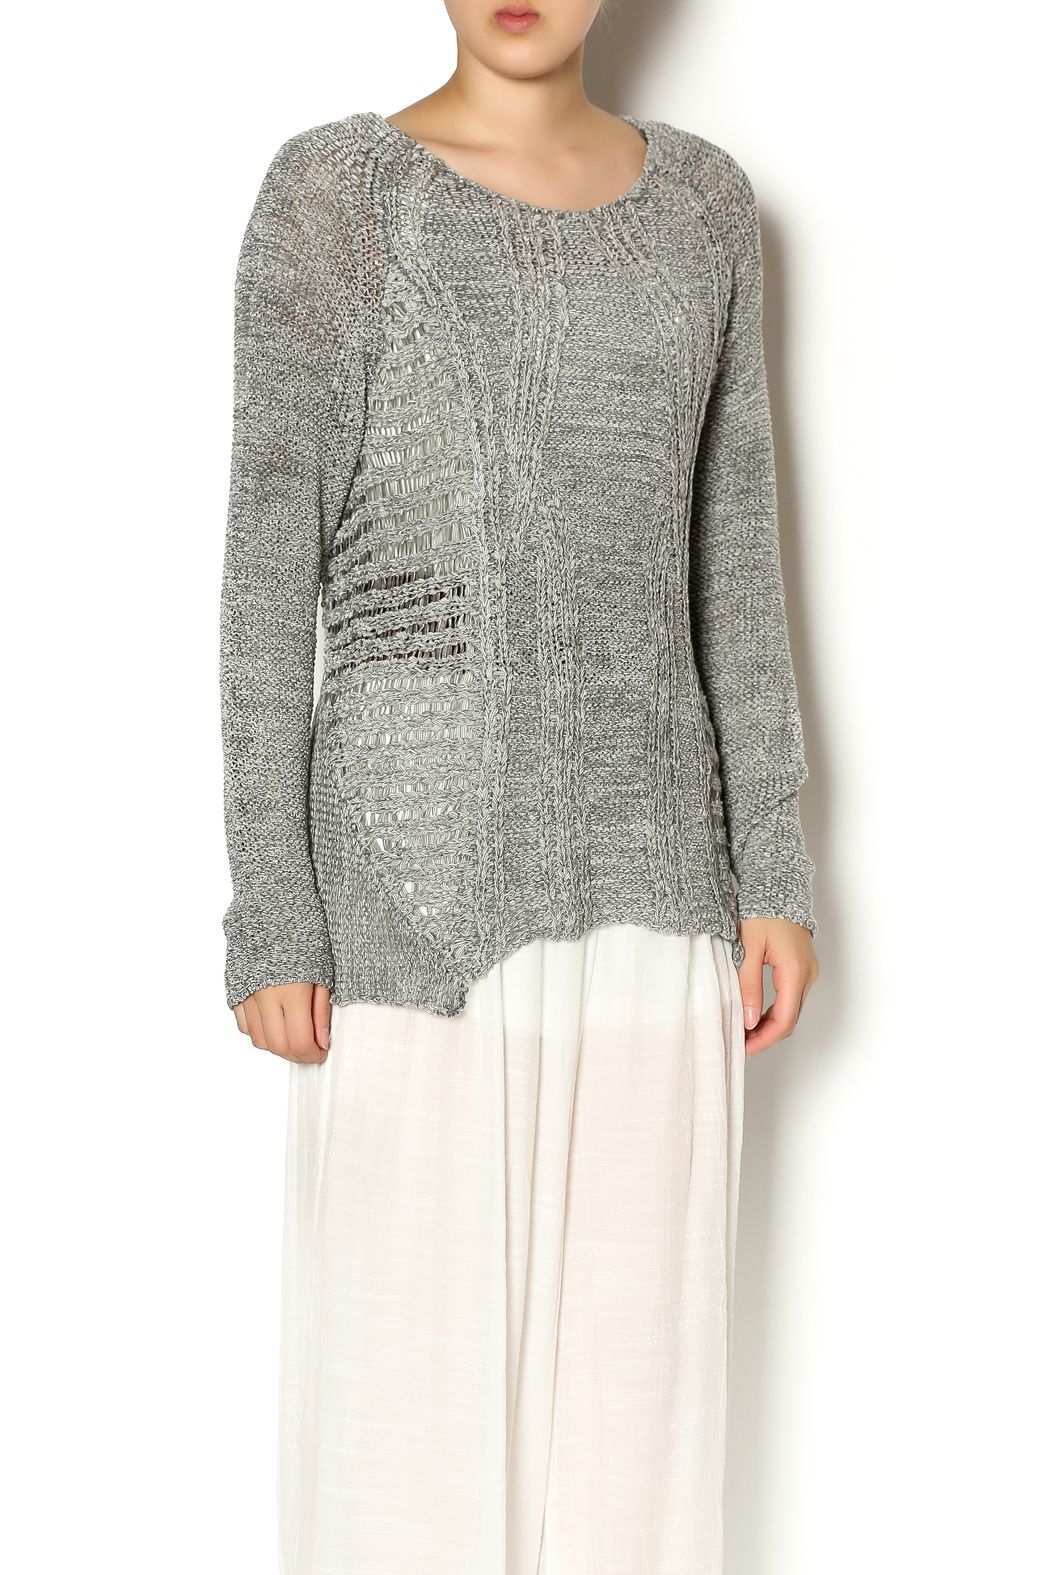 Katherine Barclay Gray Knit Sweater from New York City by Jolie ...